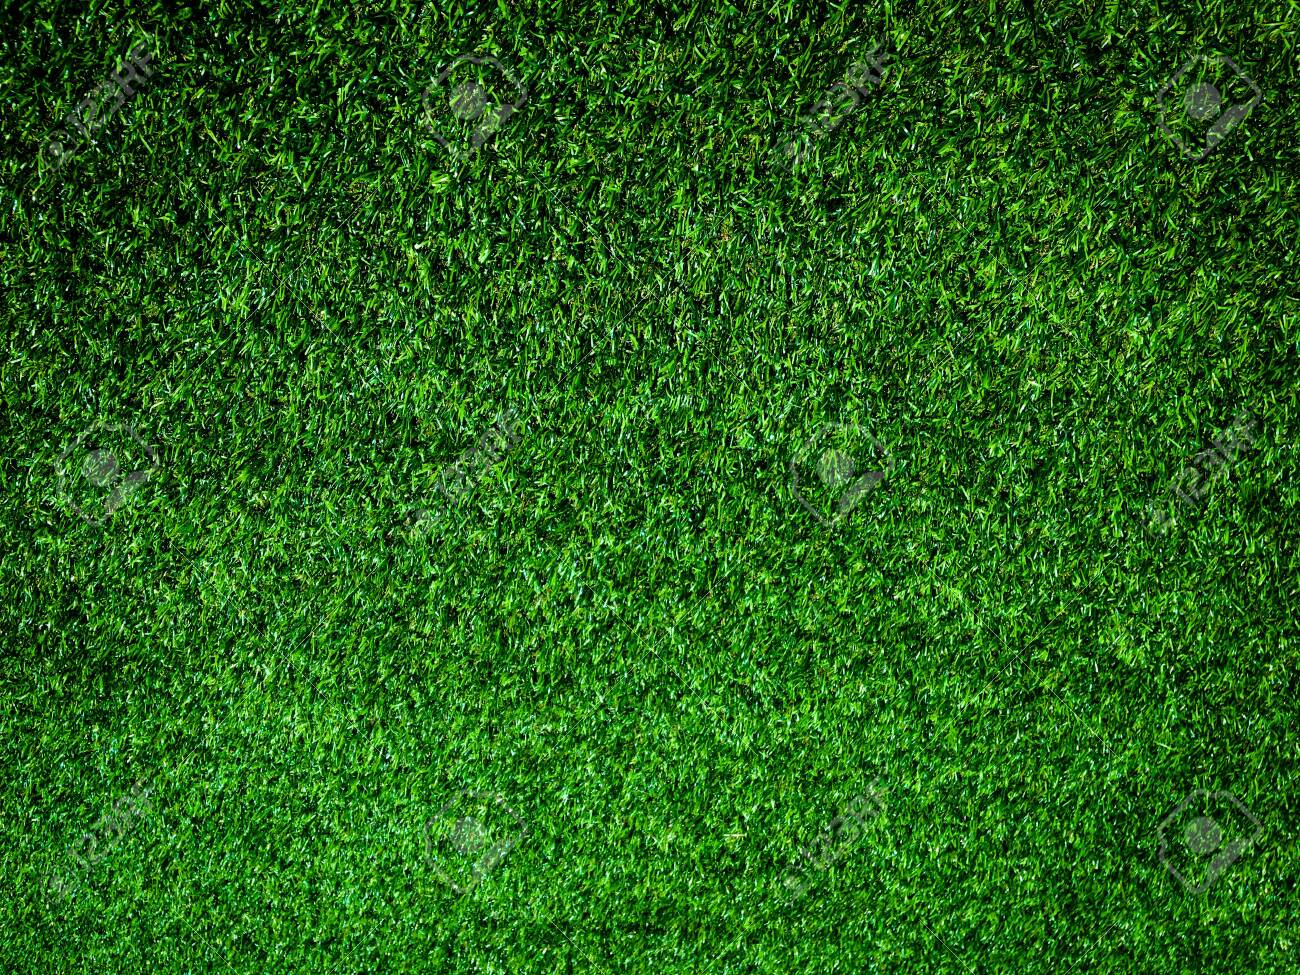 Closeup view of green grass soccer field background. Wallpaper for work and design. - 139927954